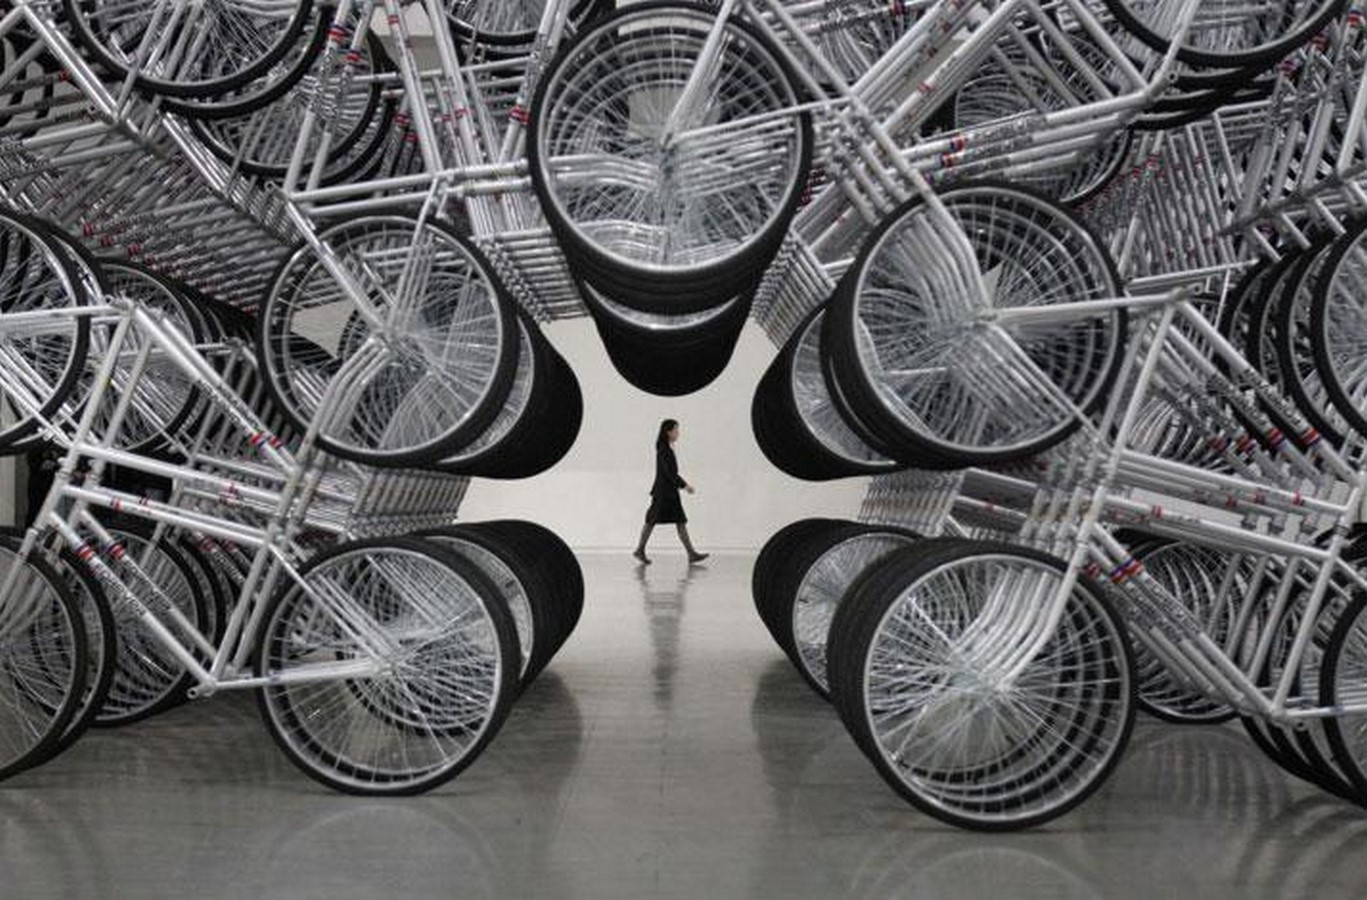 Forever Bicycles, 2013 Sheet2